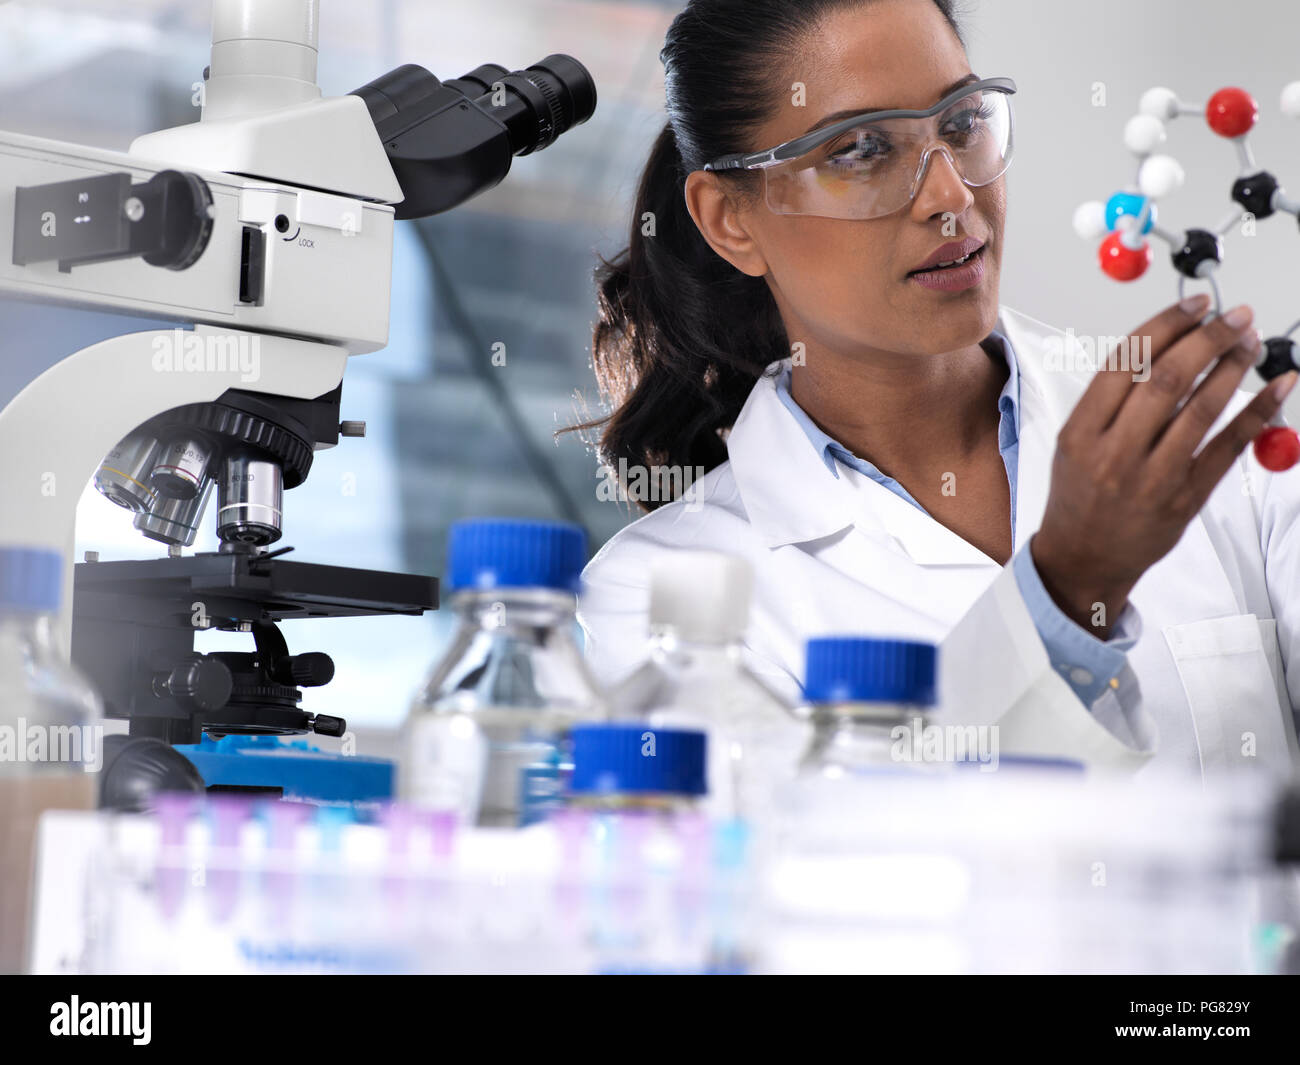 Biotechnology Research, female scientist examining a chemical formula using a ball and stick molecular model in the laboratory - Stock Image